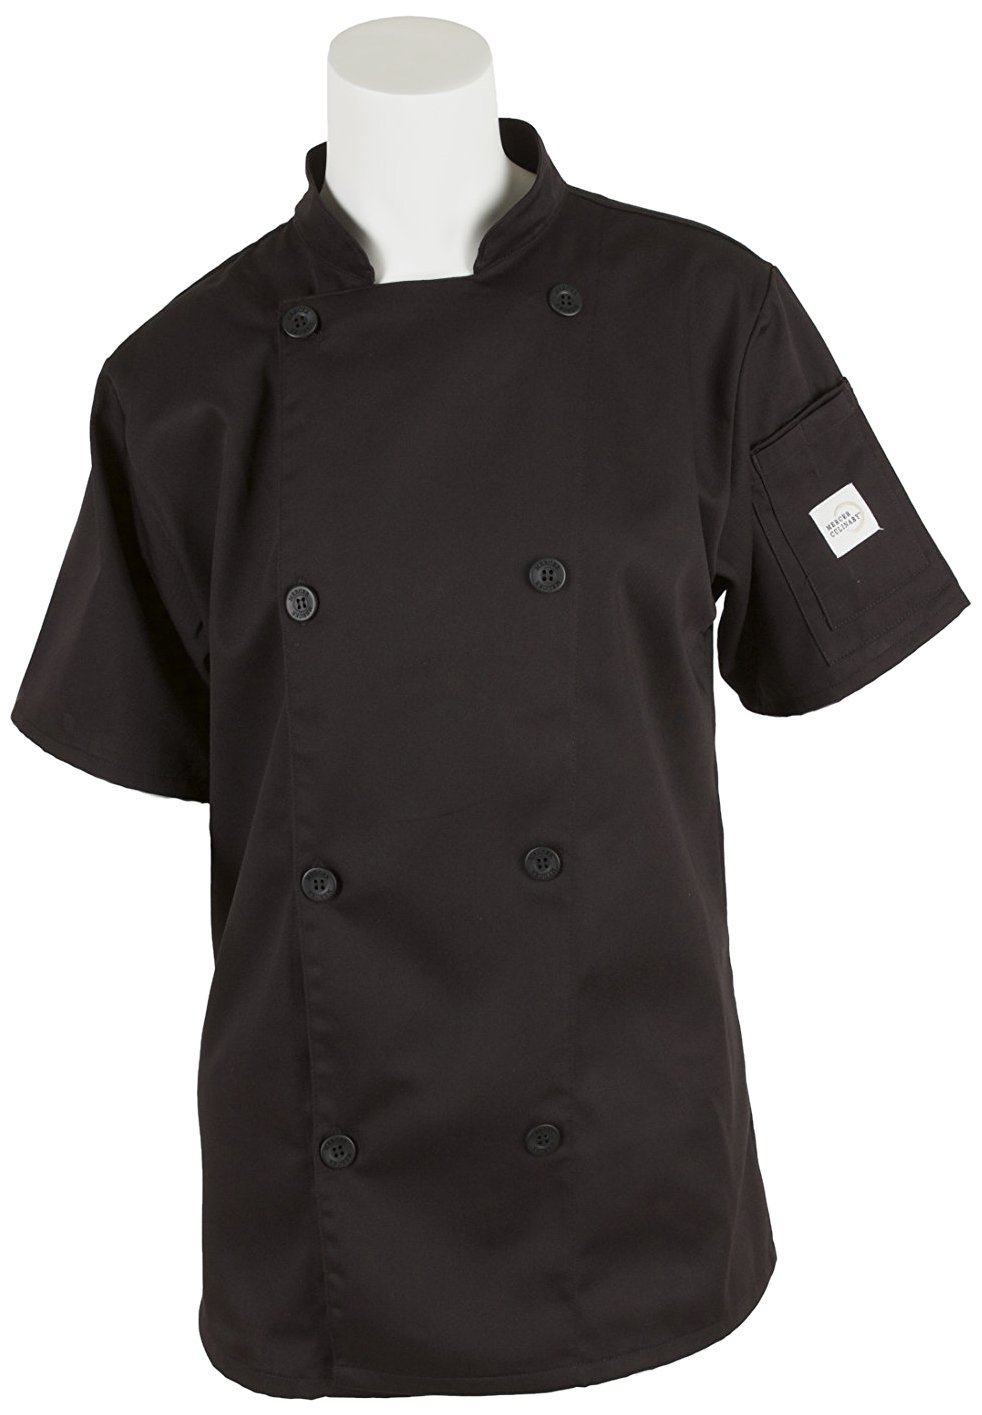 Mercer Culinary M61032BK2X Genesis Women's Short Sleeve Chef Jacket with Traditional Buttons, XX-Large, Black